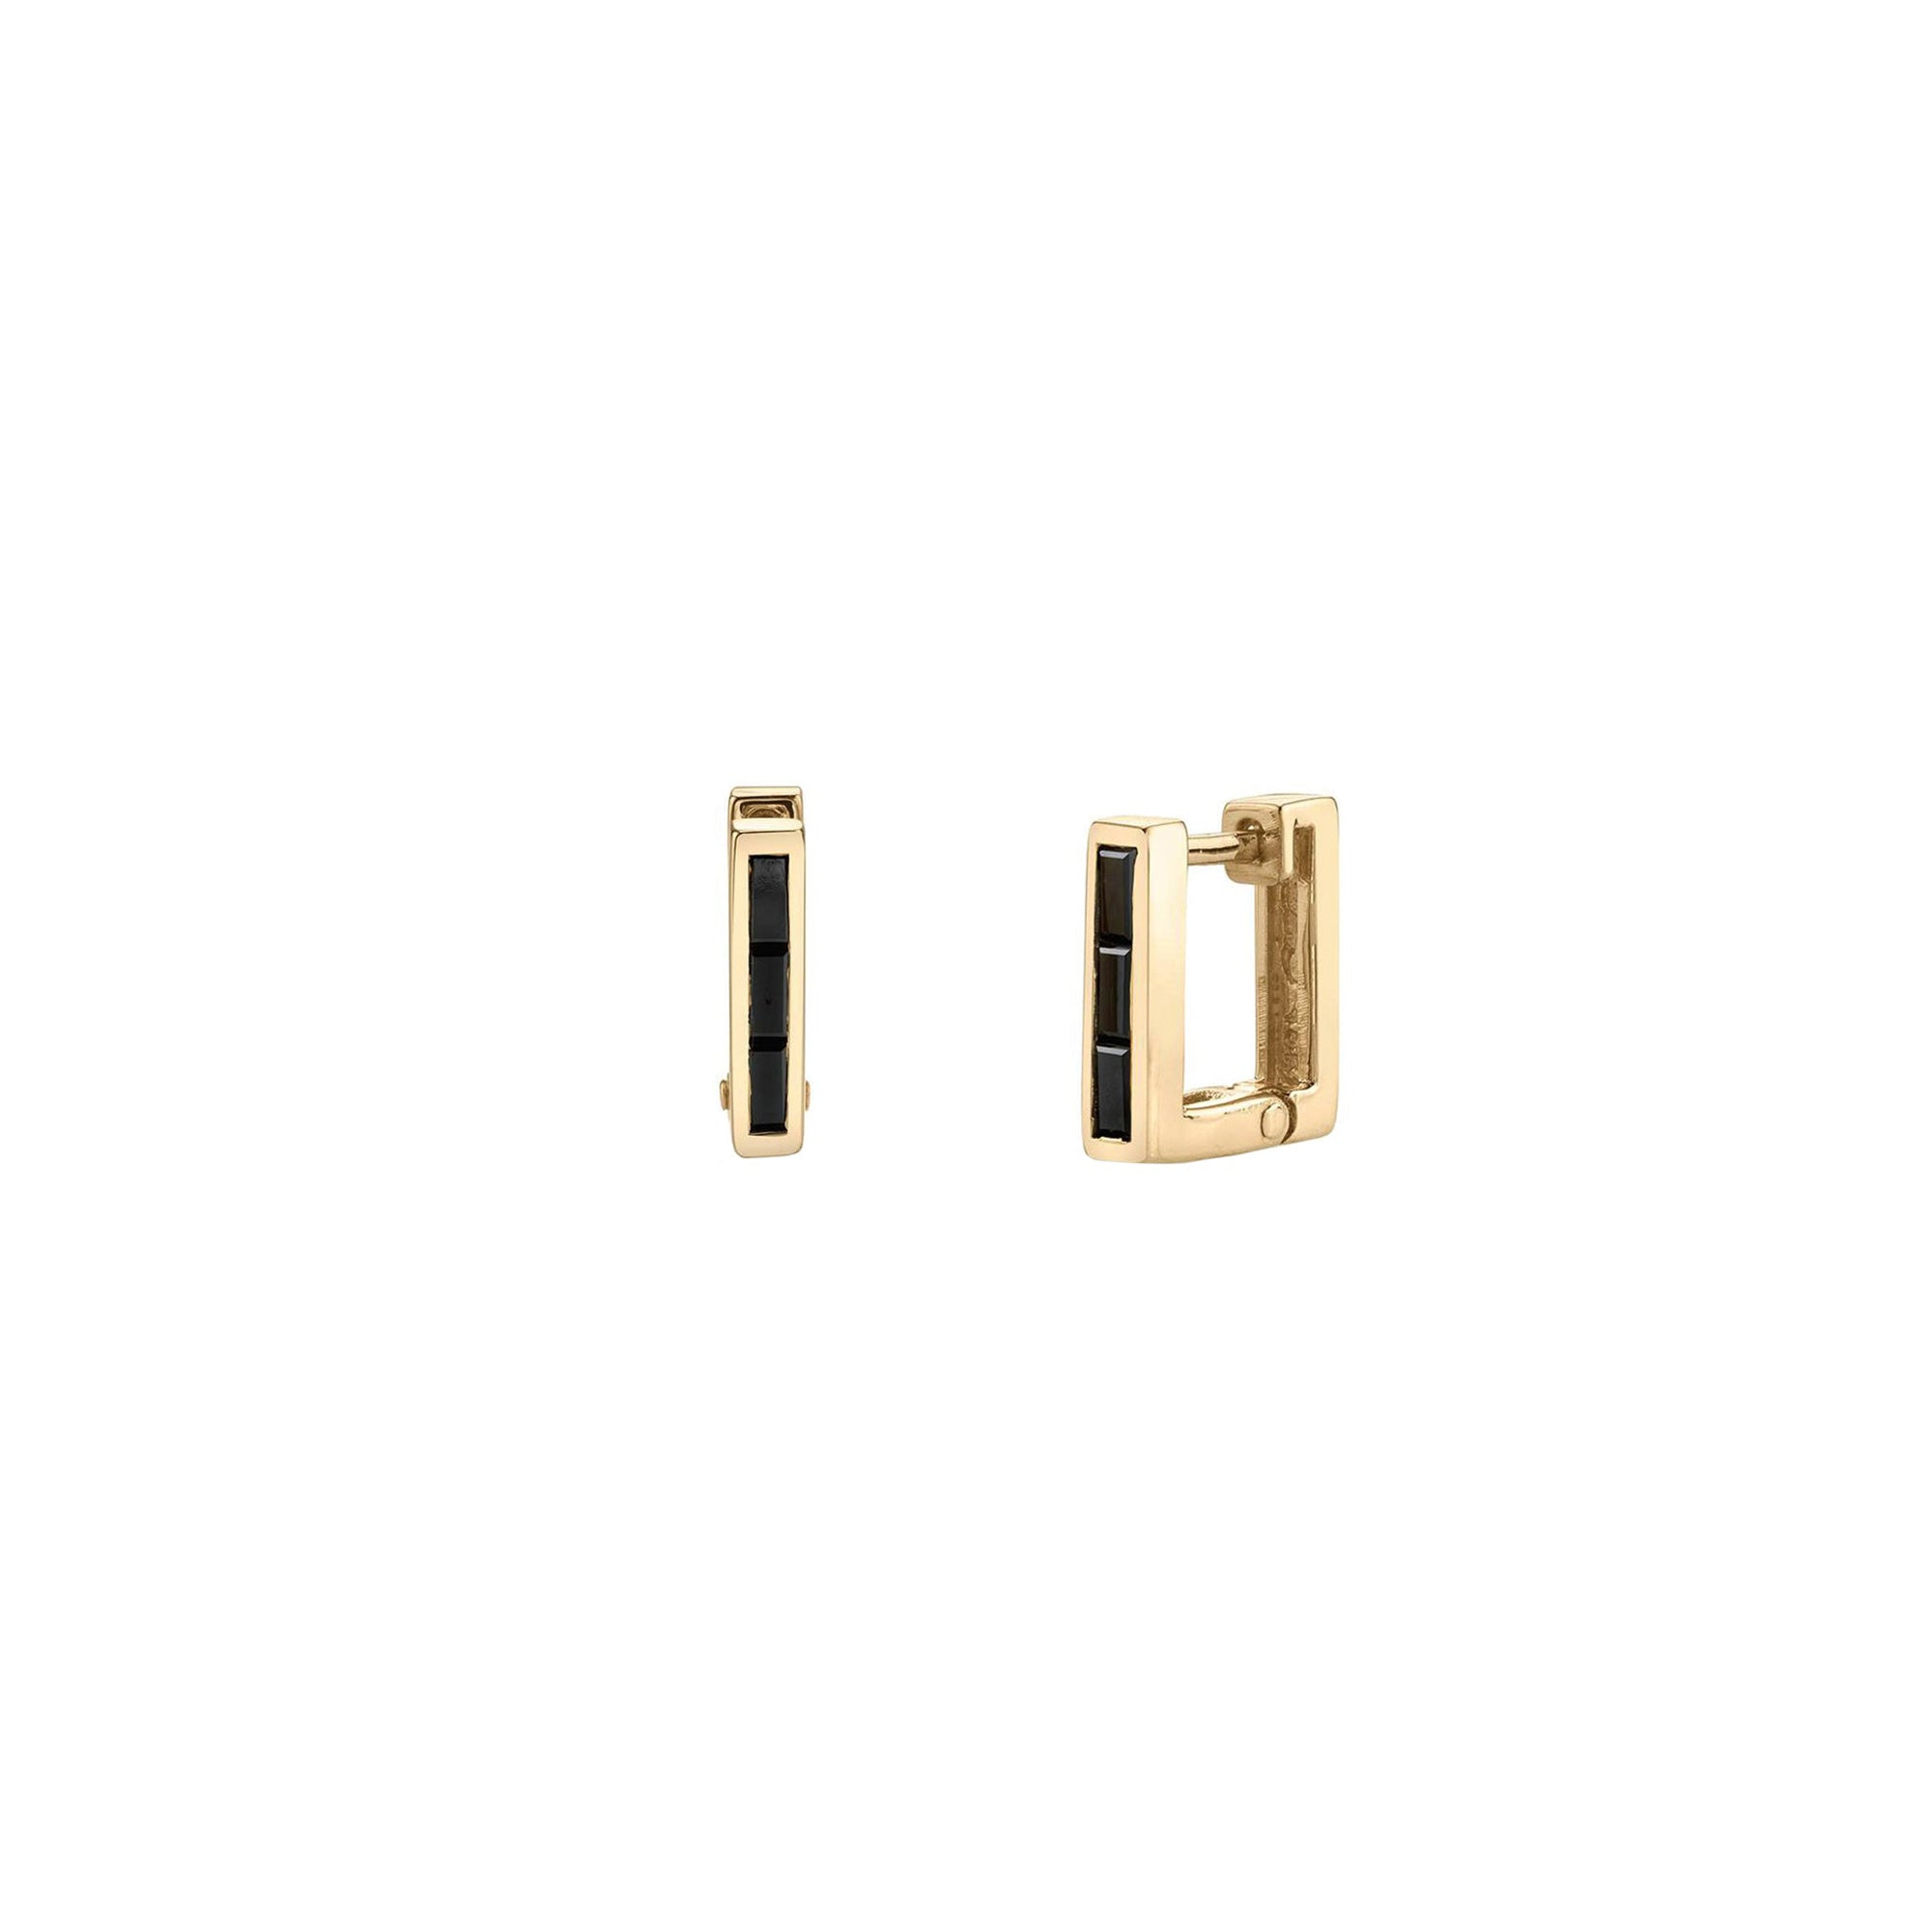 Lizzie Mandler Petite Square Huggies - Black Diamond & Gold - Earrings - Broken English Jewelry